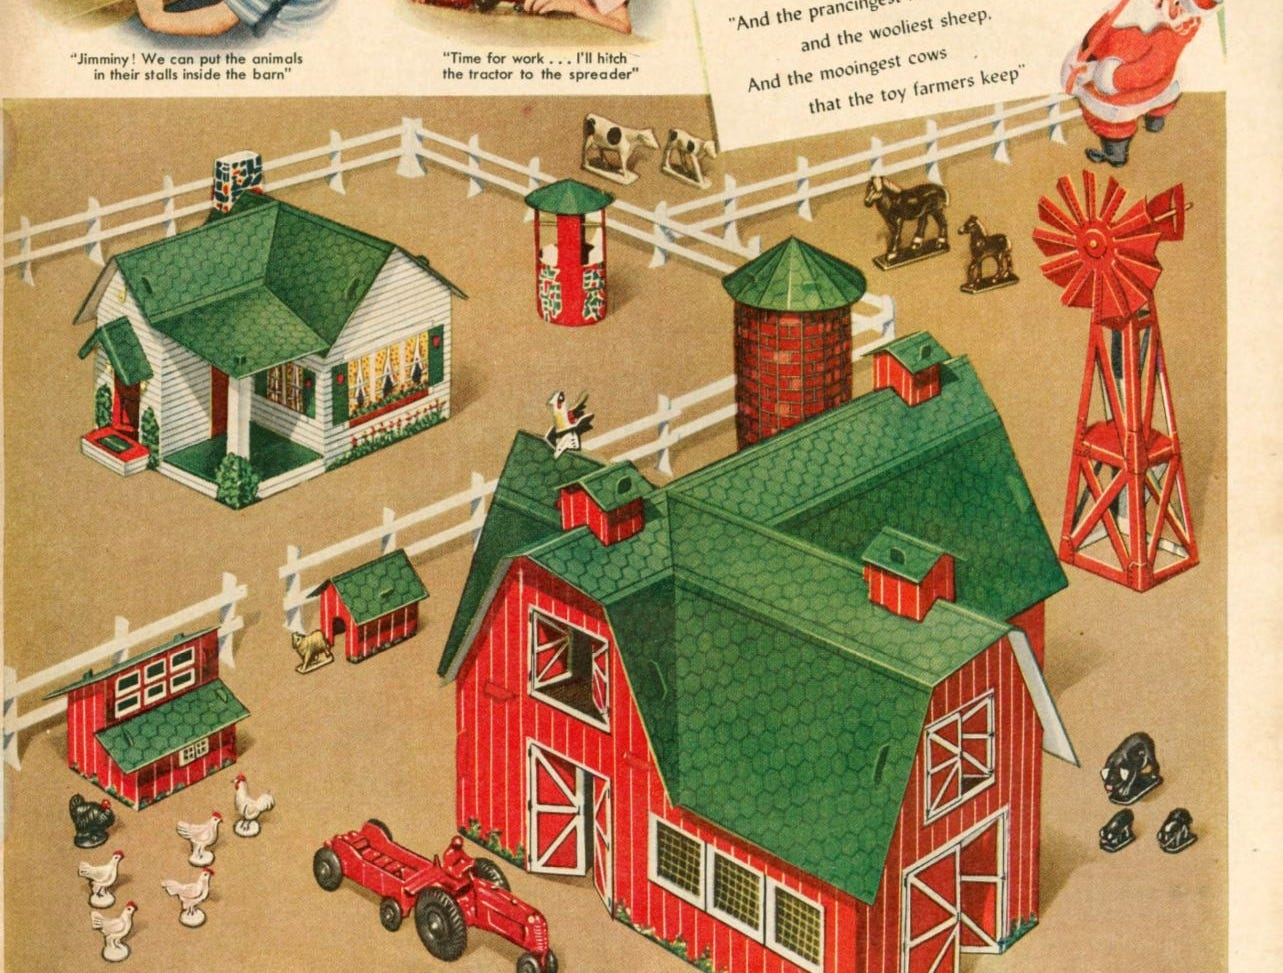 Sears Wishbook catalogs were a big deal for Christmas shoppers and gift recipients. Jason Liebig has gathered and scanned catalogs from the 1930s to the 1990s through his website, WishBookWeb.com.